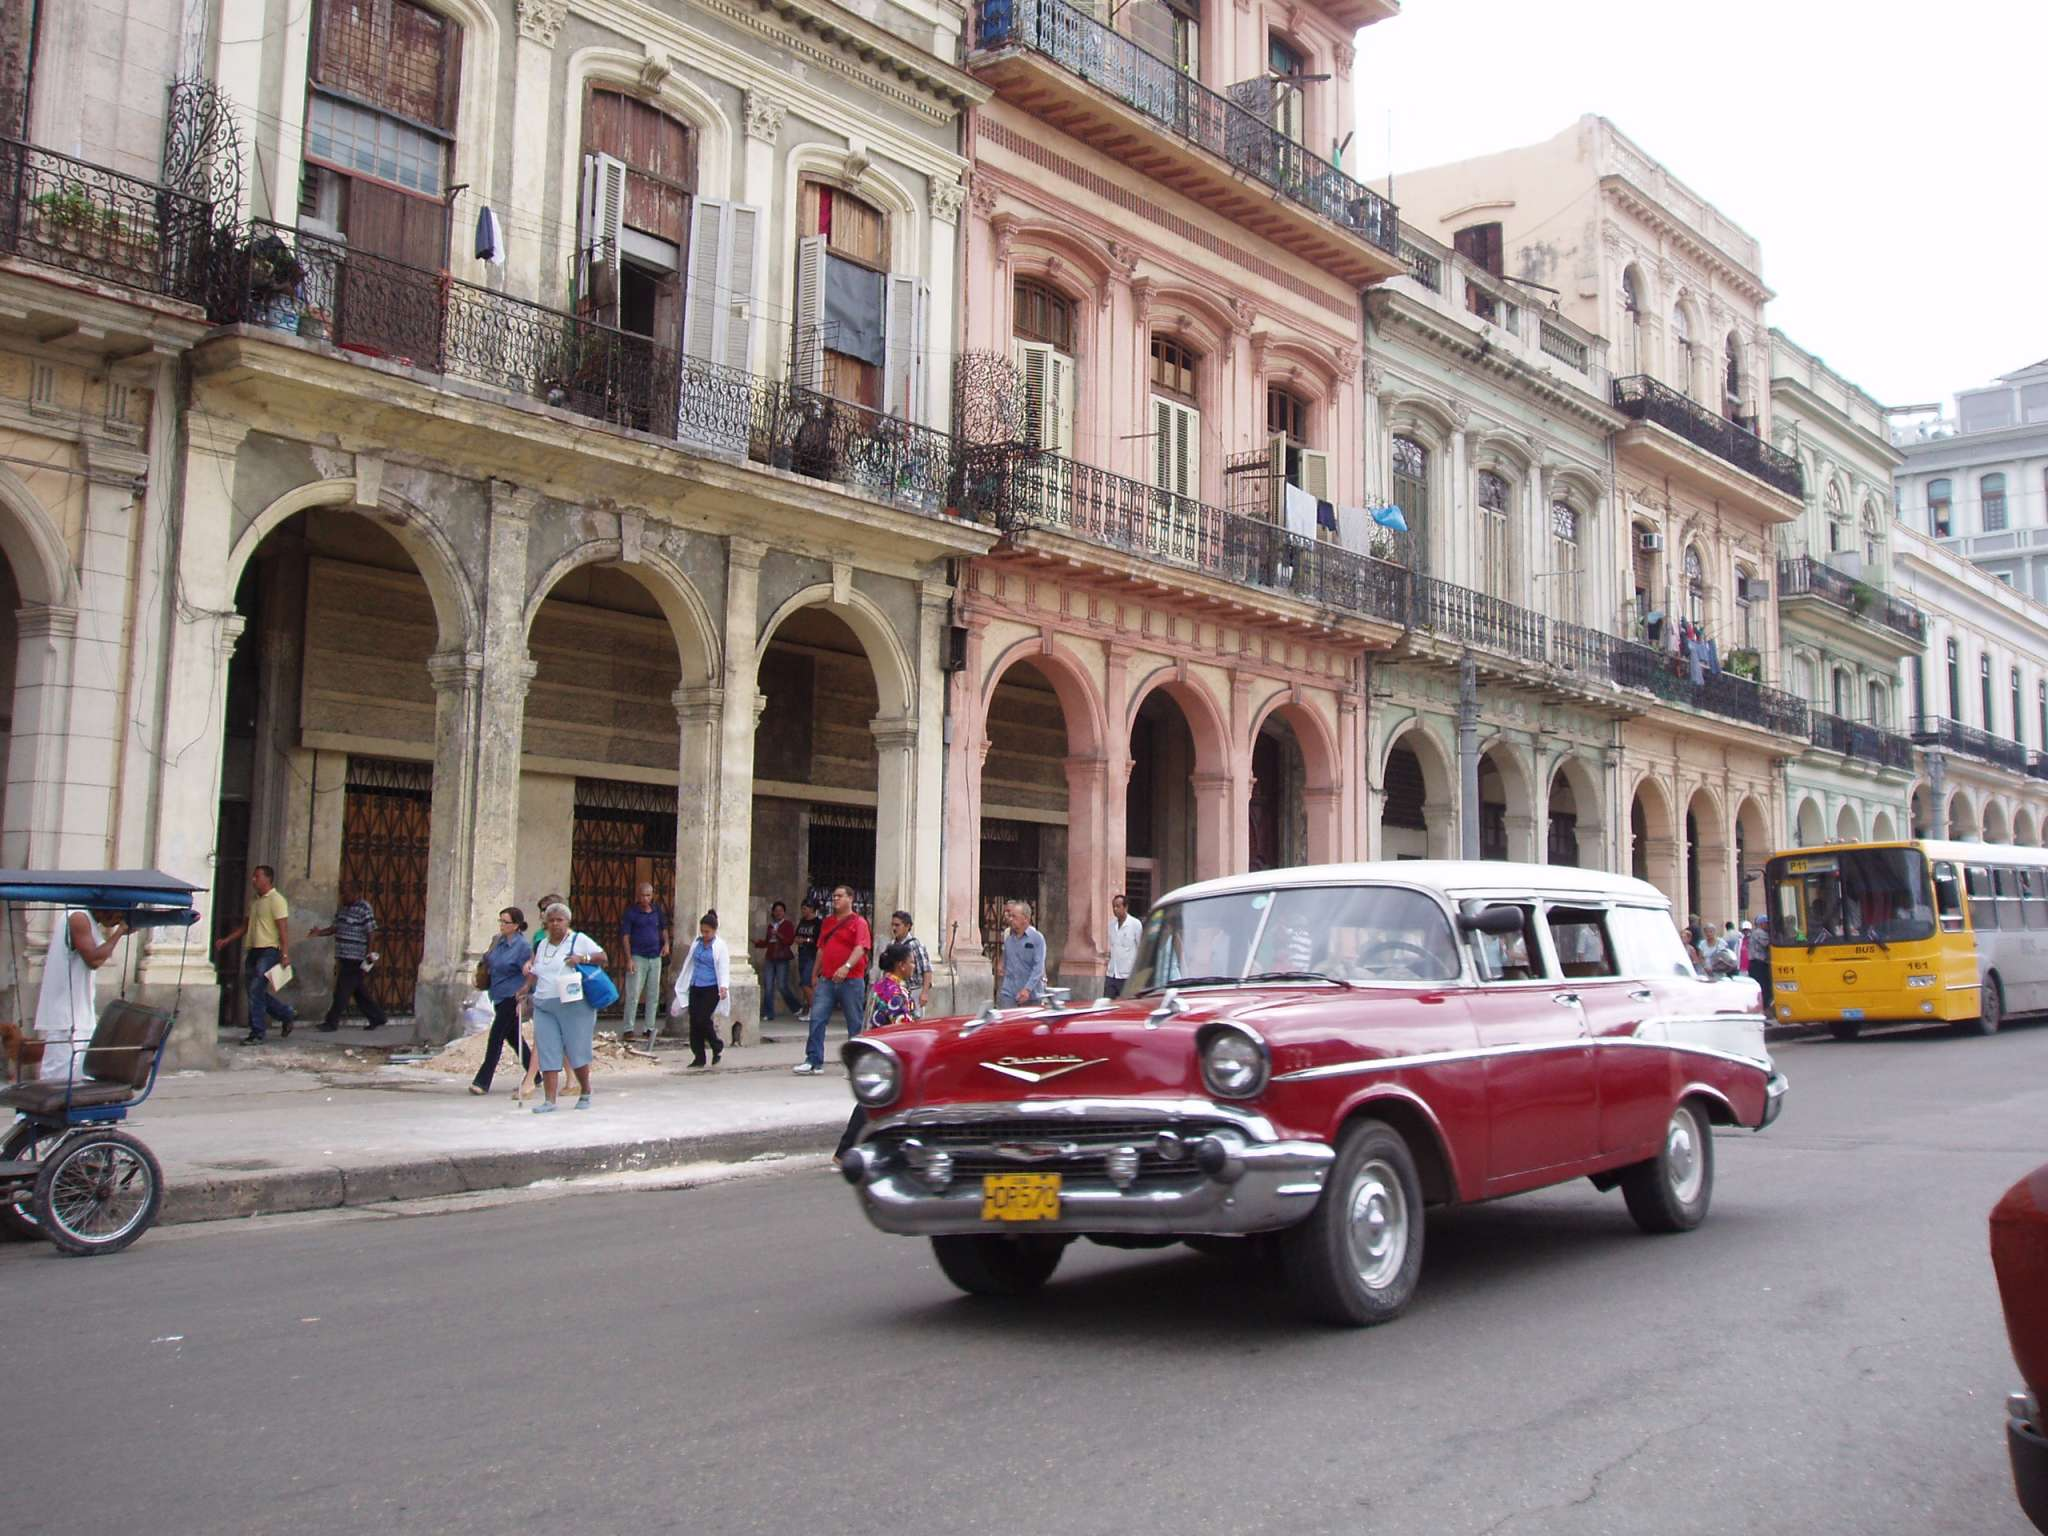 Cuba: A Nation Still Living in the Cold War Era